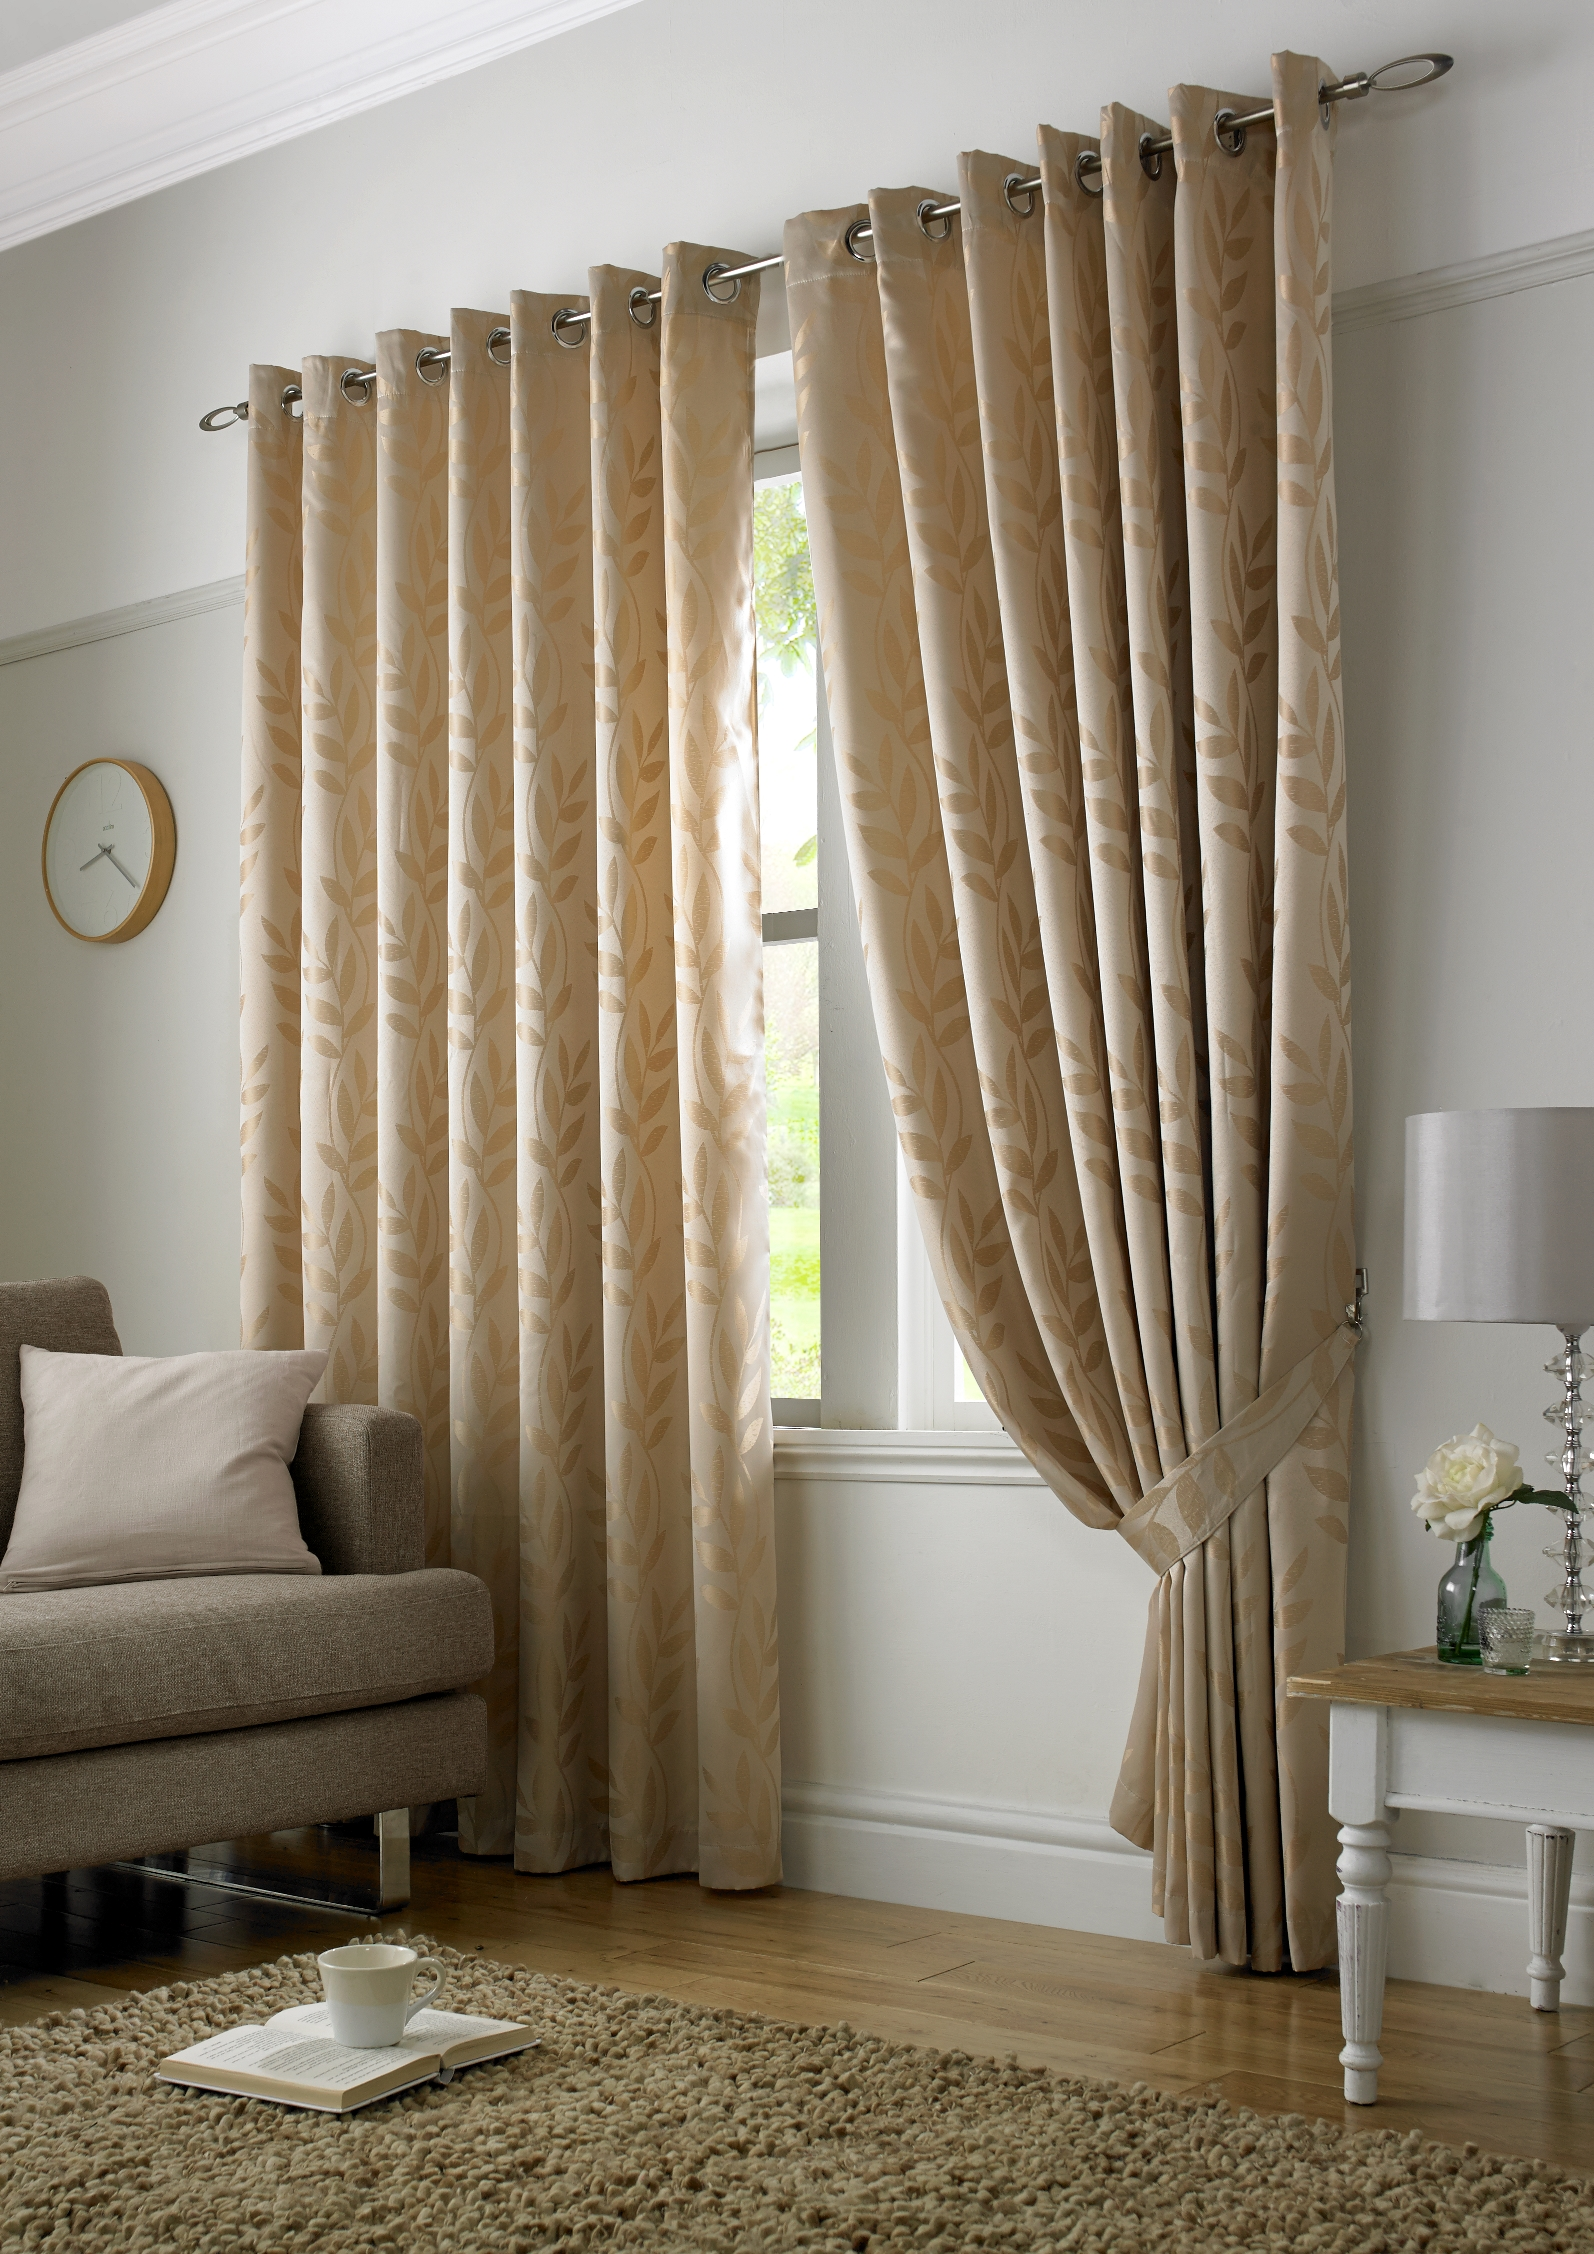 Stockists of Latte Tivoli Ready Made Eyelet Curtains